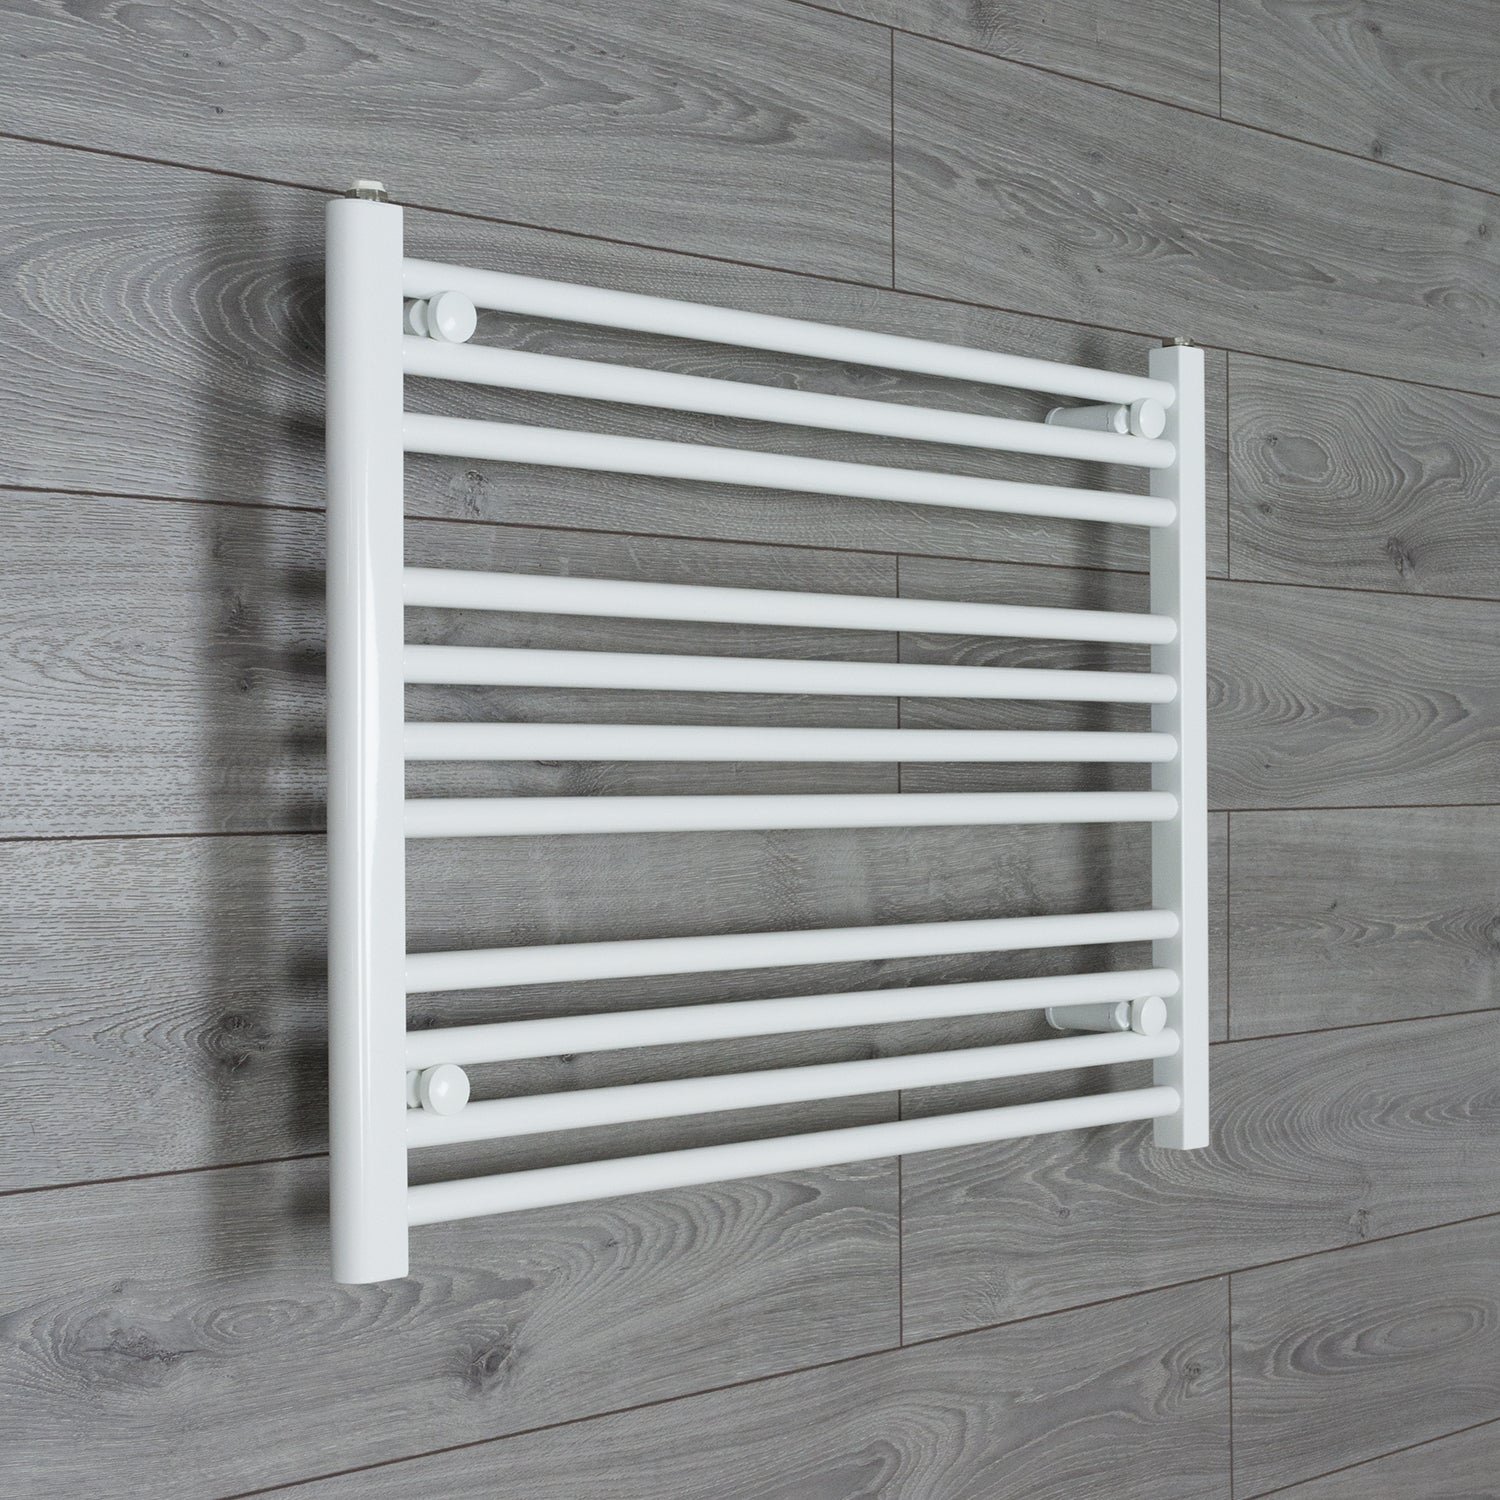 750mm Wide 600mm High White Towel Rail Radiator